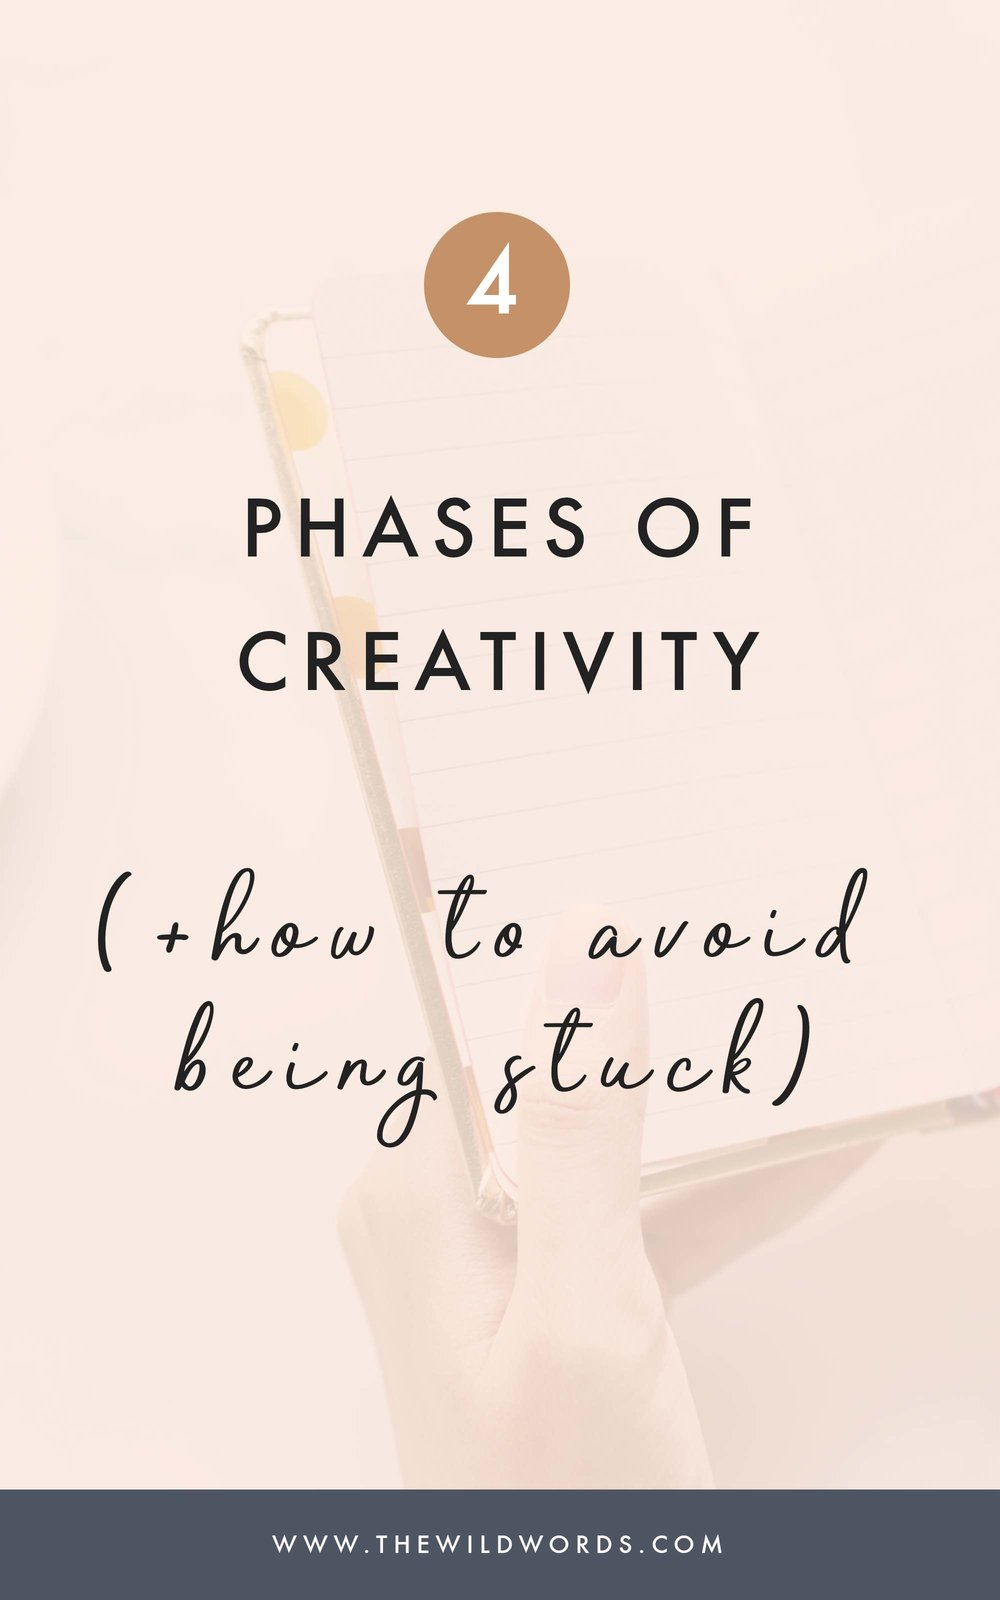 4 Phases of Creativity (via Wild Words): What happens when you're feeling stuck creativity? Todd Henry has a framework to help you avoid the common trap of getting too comfortable.